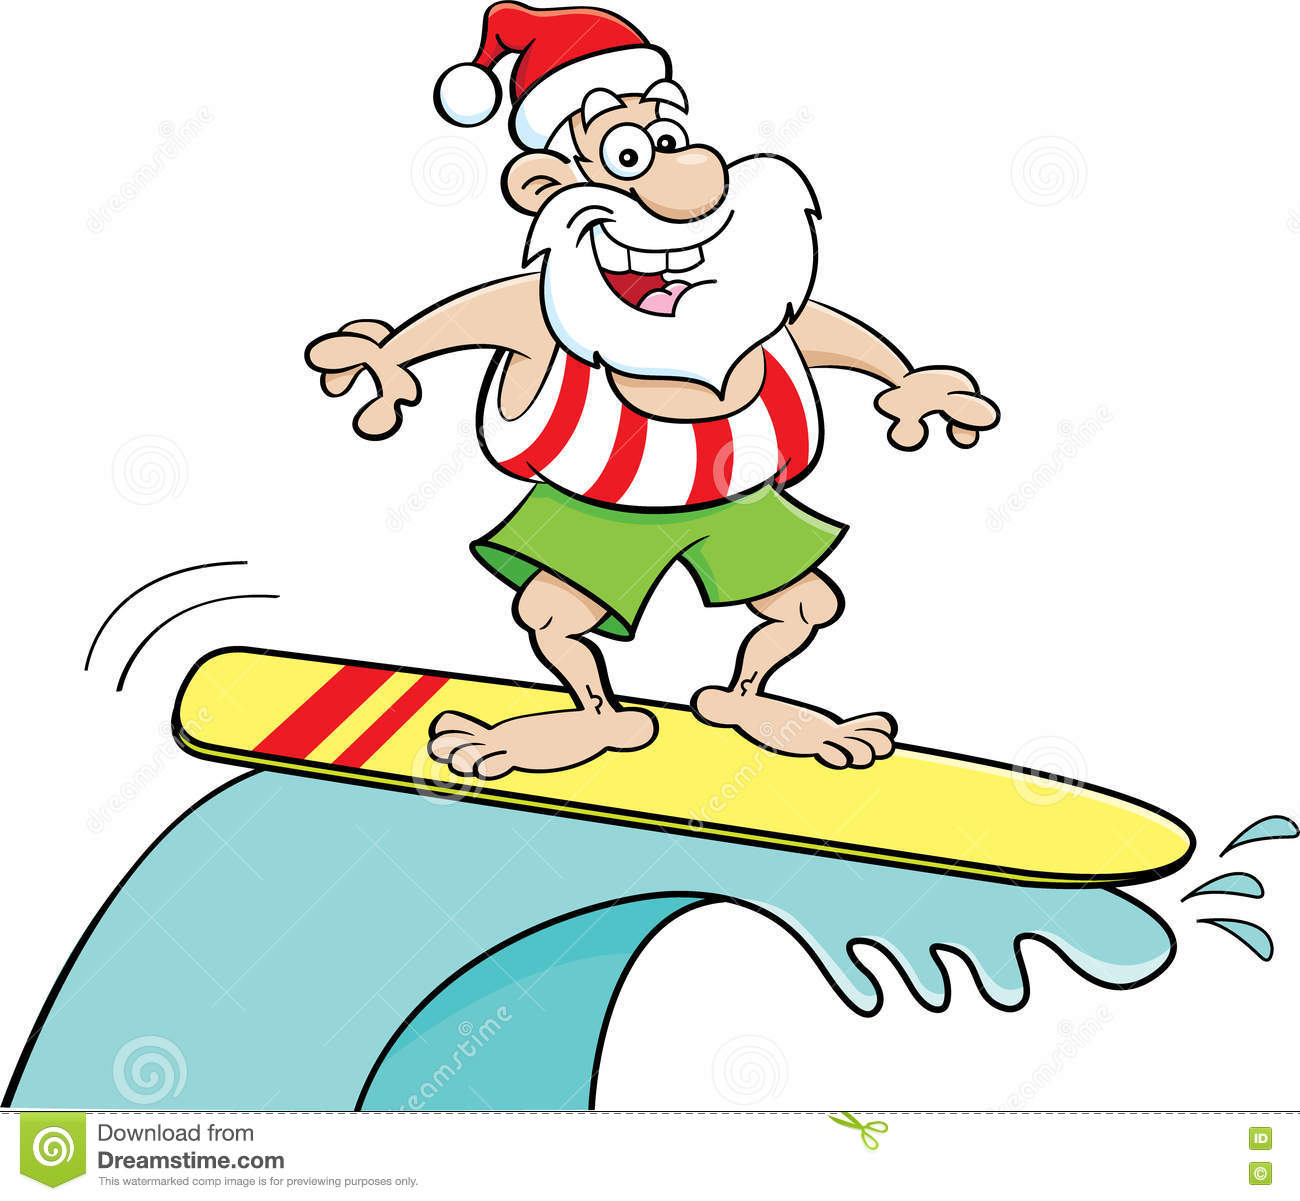 Santa surfboard clipart vector transparent Cartoon Santa Claus Riding A Surfboard. Stock Vector - Image: 72890939 vector transparent